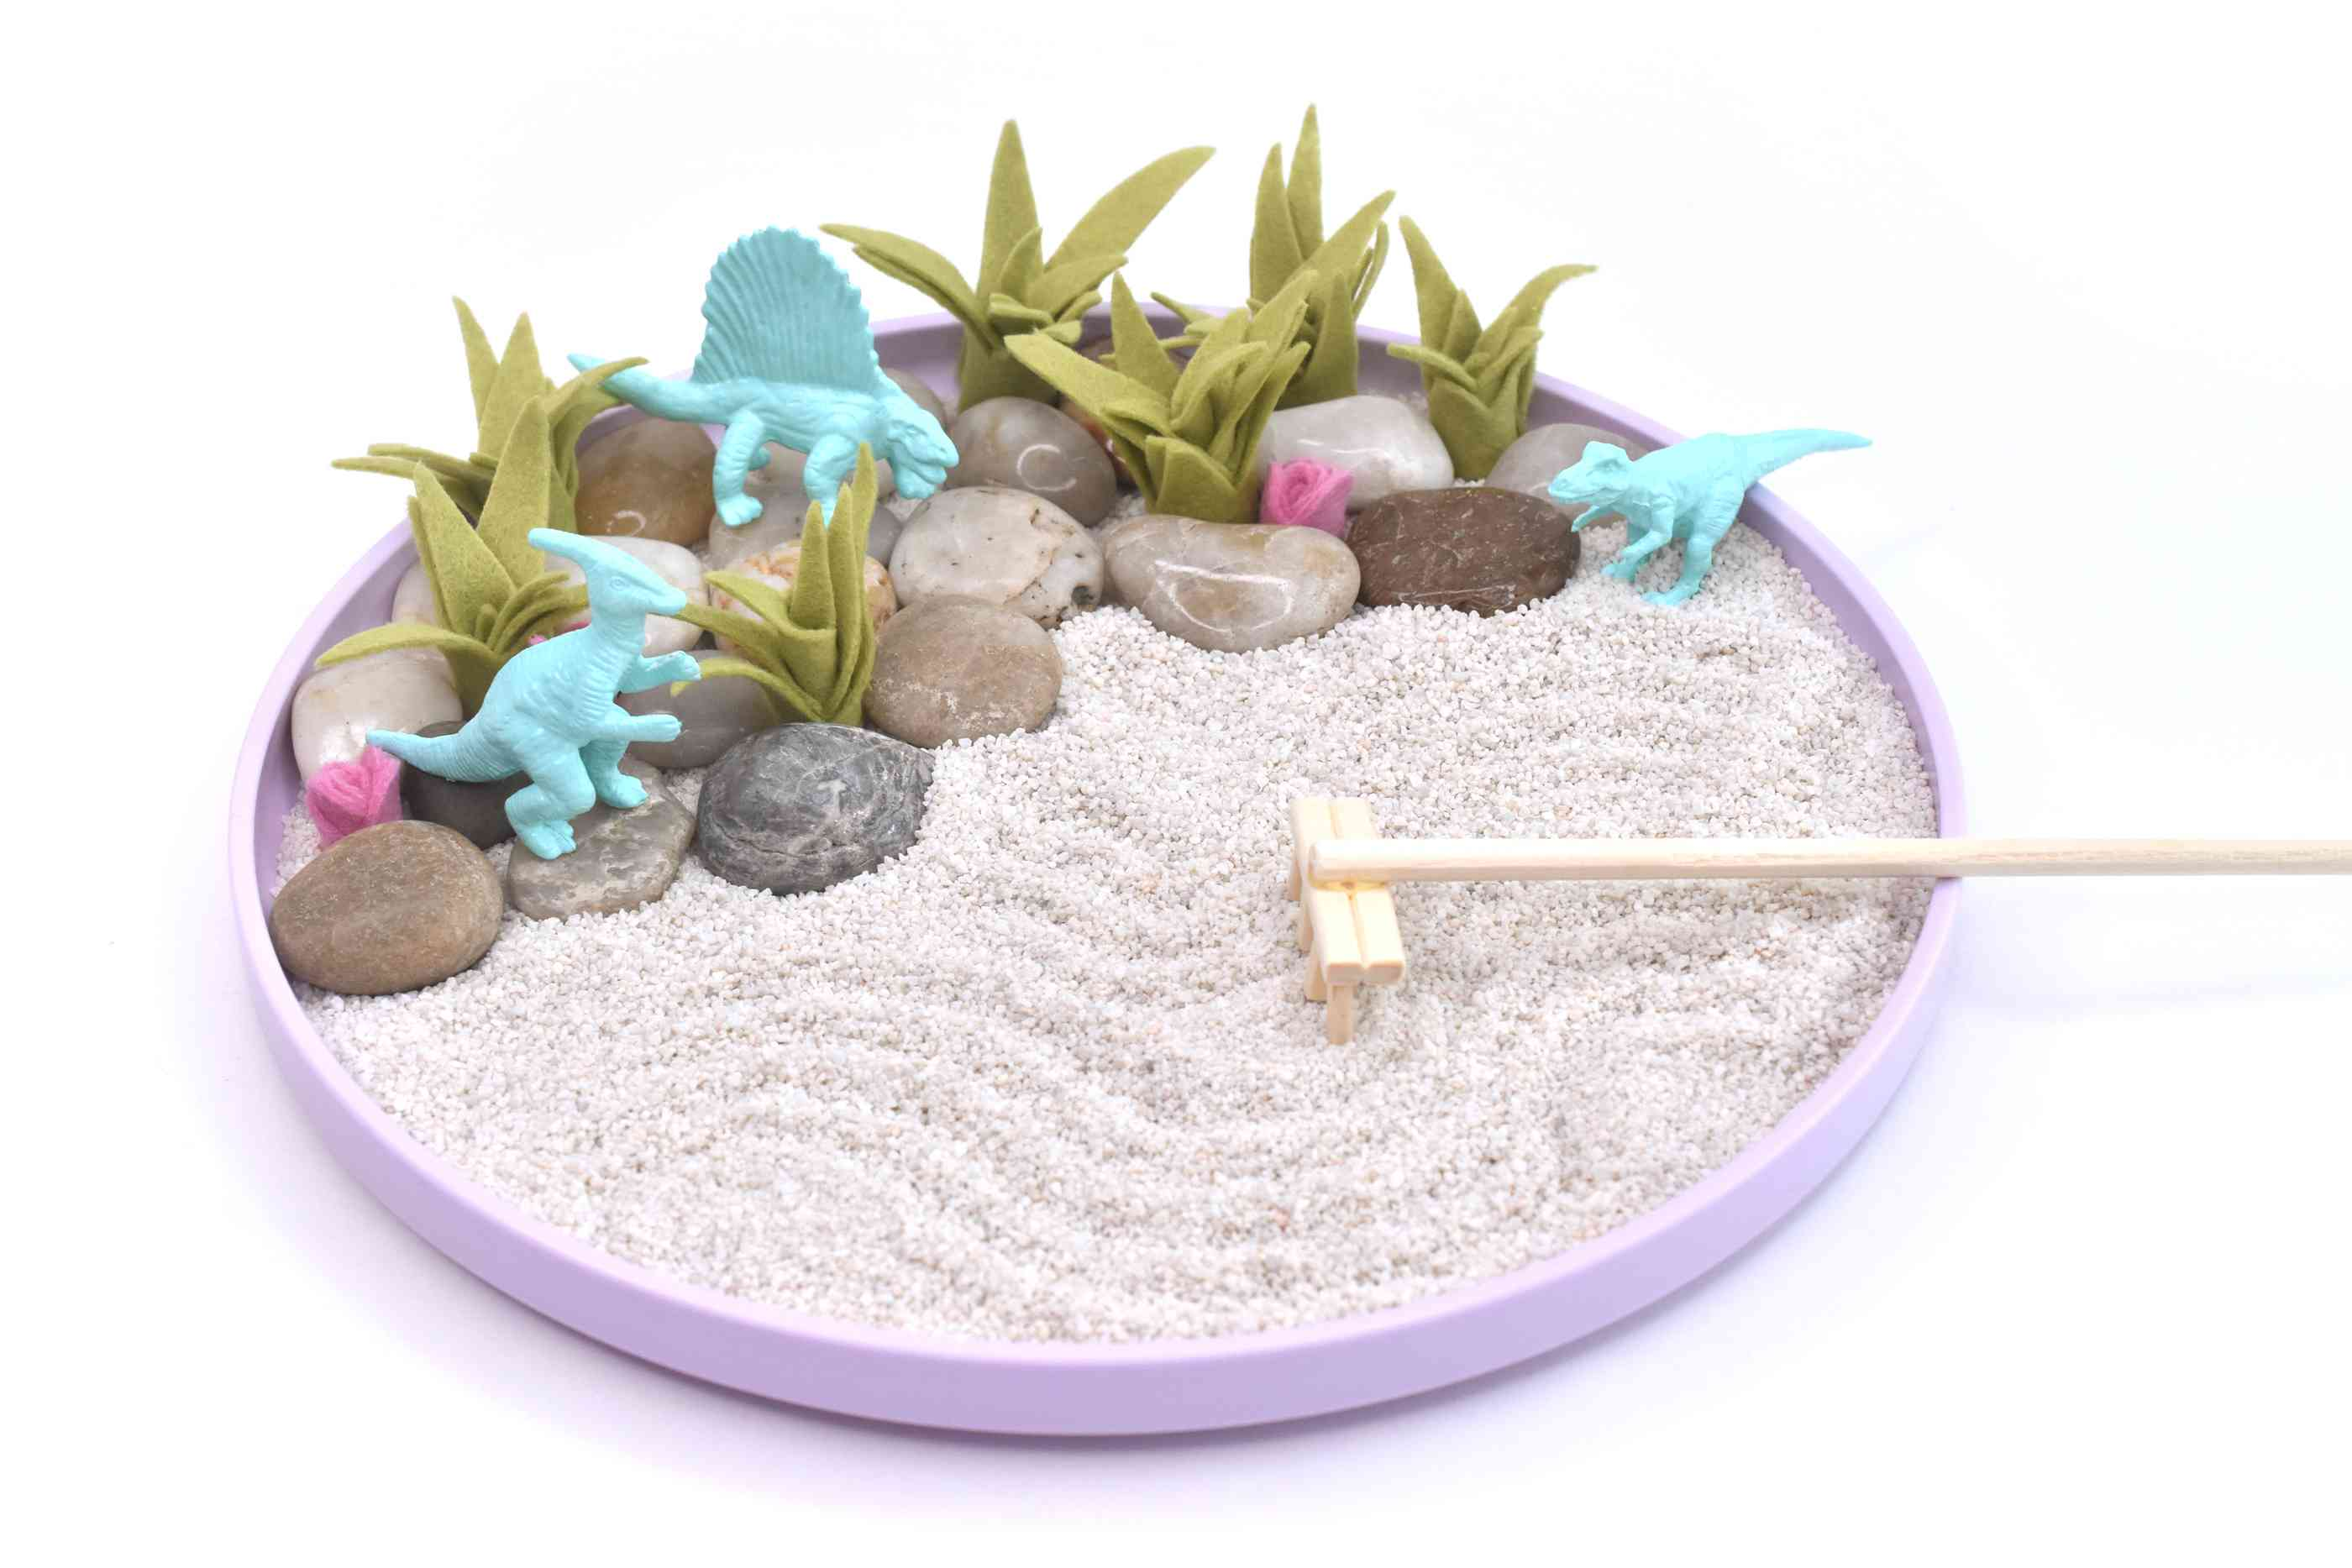 Make an Adorable Mini Mindfulness Garden With Dinosaurs